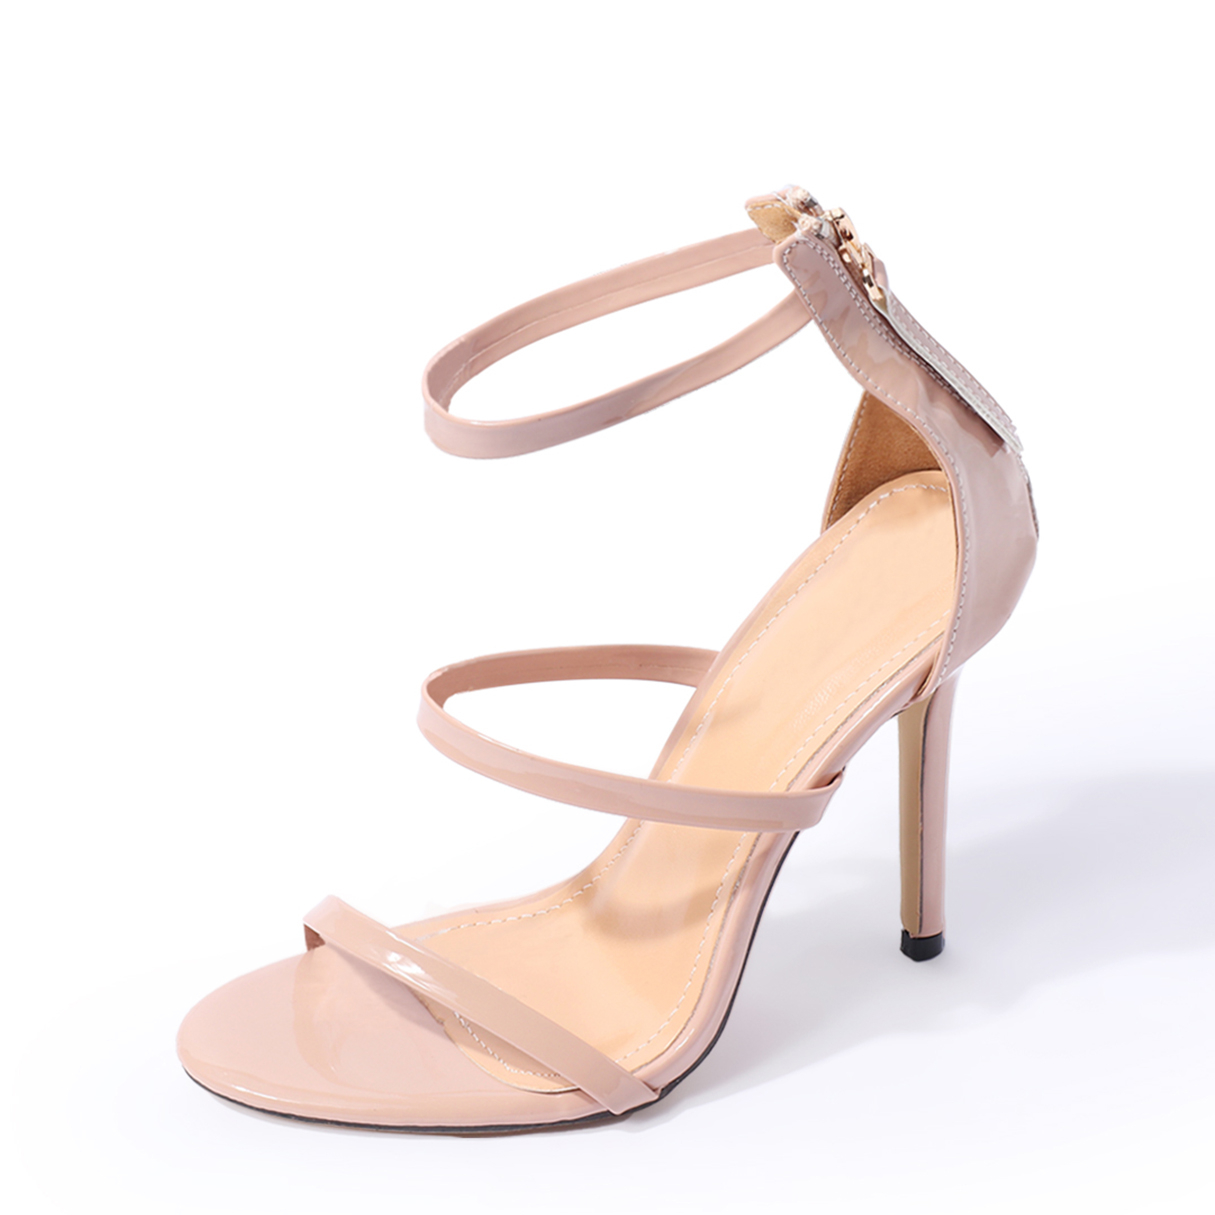 Nude Leather-look Ankle Strap Zipper Back High Heel Sandals women sandals 2018 fashion summer shoes woman rome ankle strap flat sandals casual peep toe gladiator sandals low heel shoes